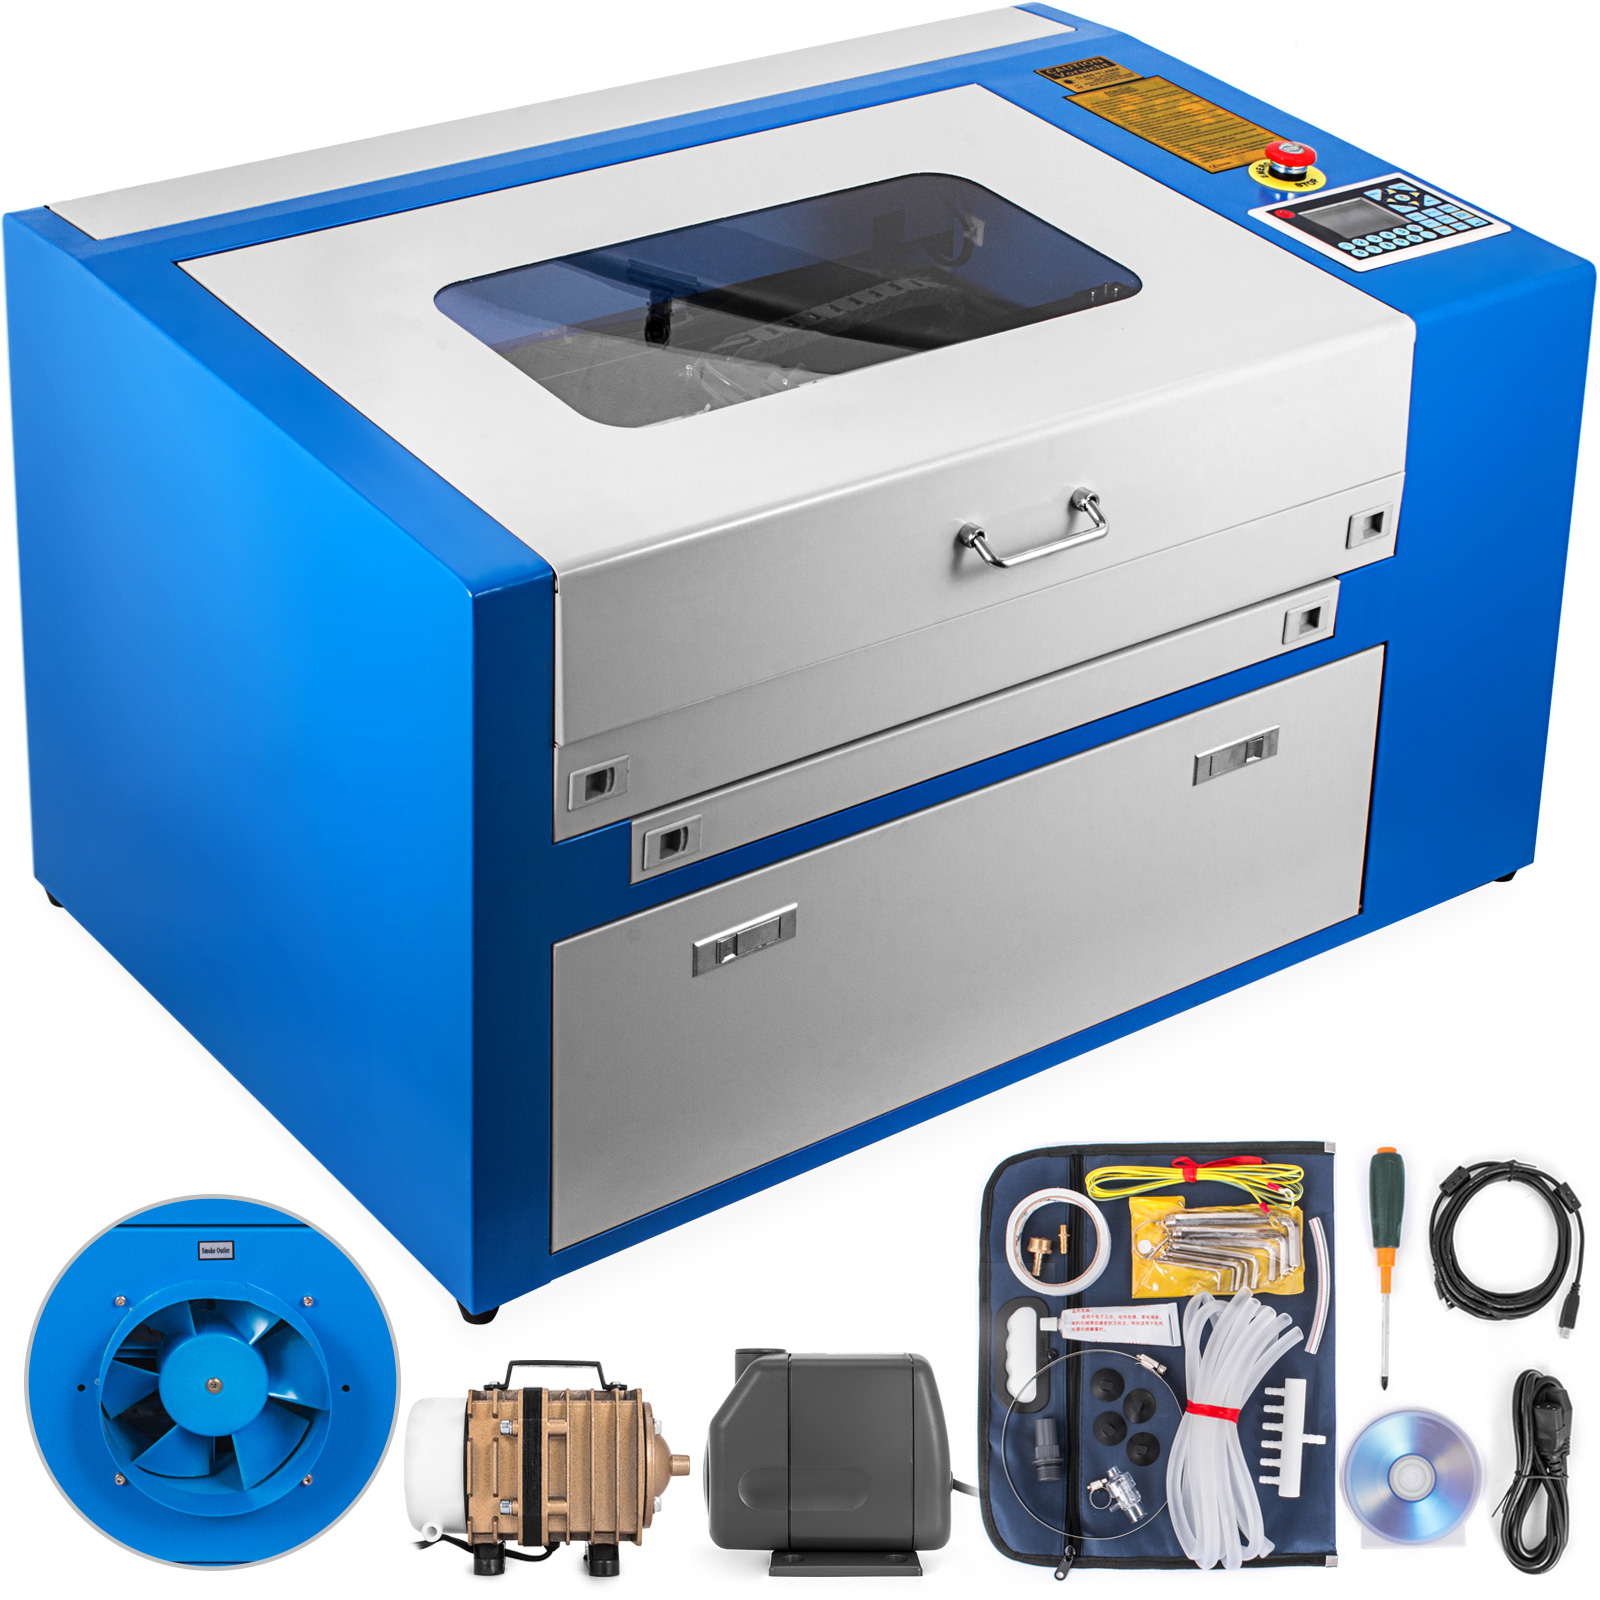 CO2-Usb-Laser-Engraving-Cutting-Machine-Engraver-Cutter-Air-Assist-Carving thumbnail 24